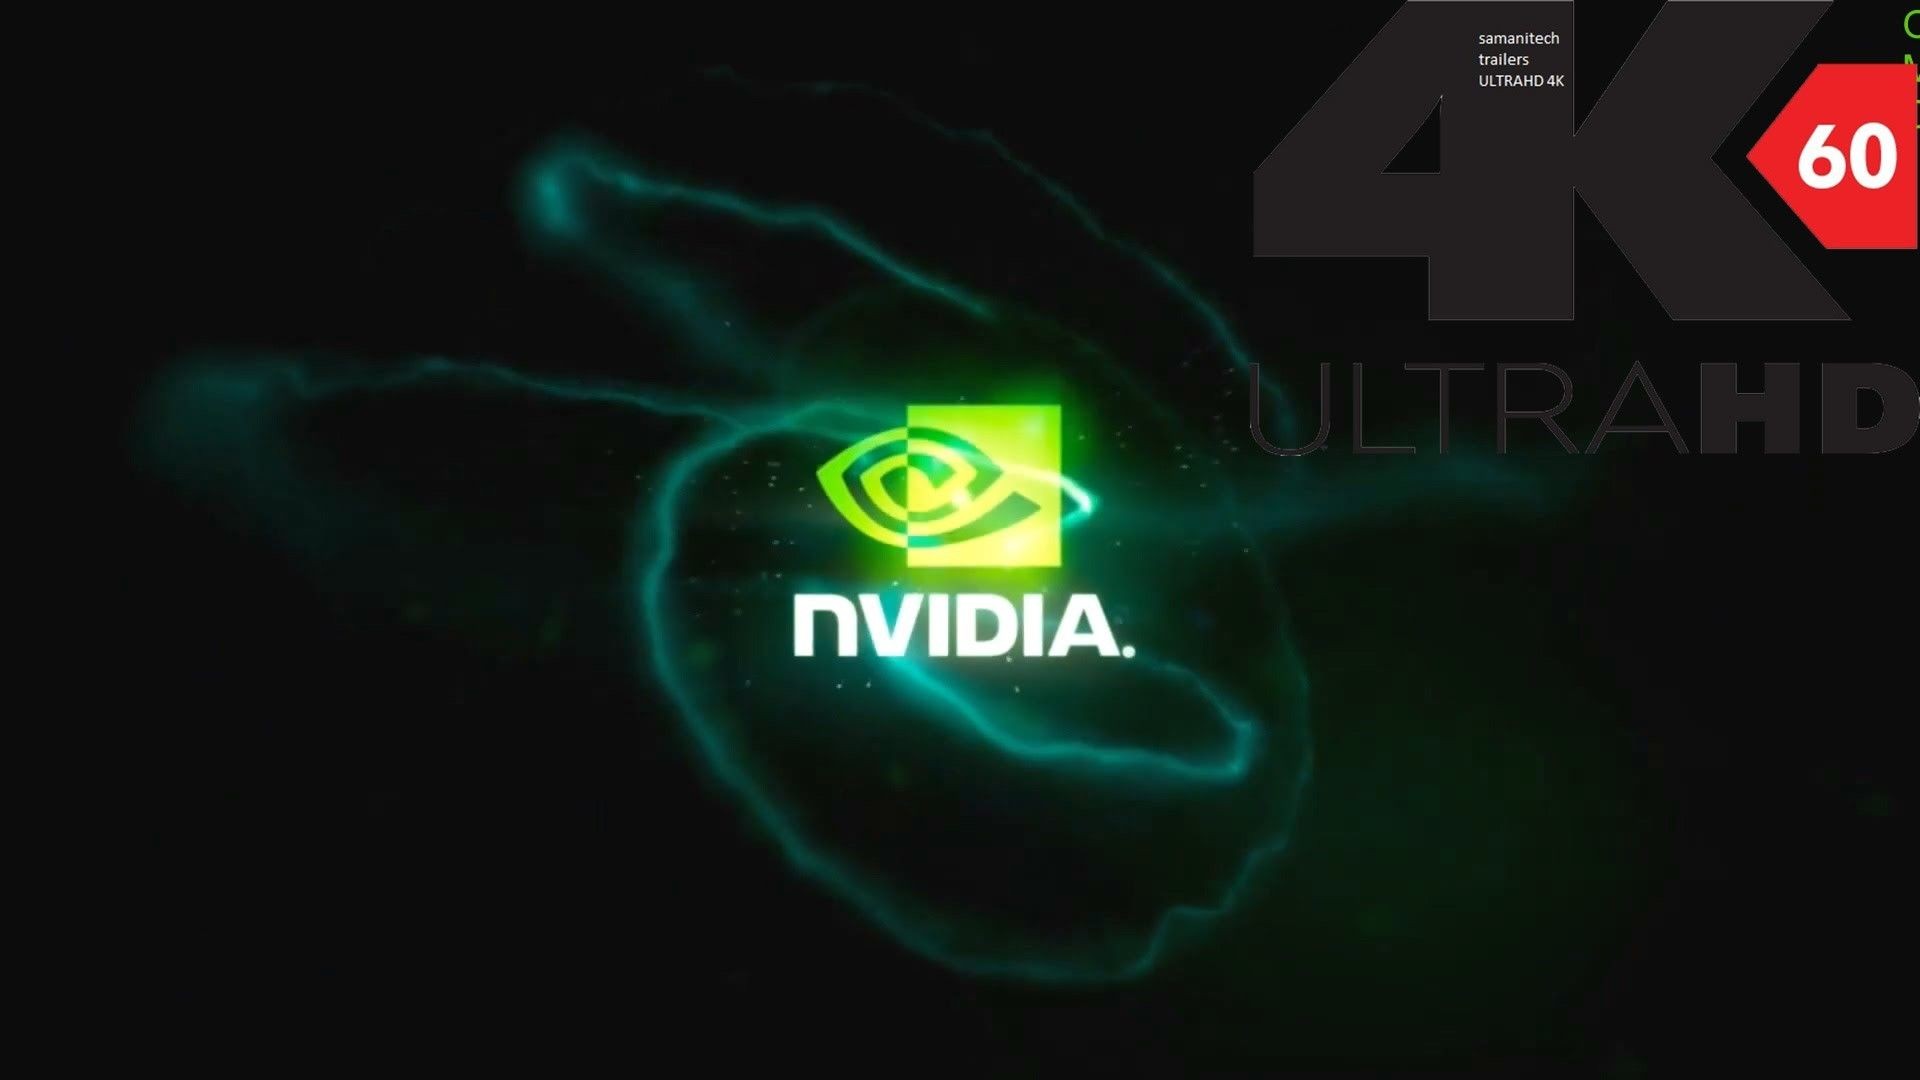 NVIDIA Green Wallpapers - Top Free NVIDIA Green Backgrounds